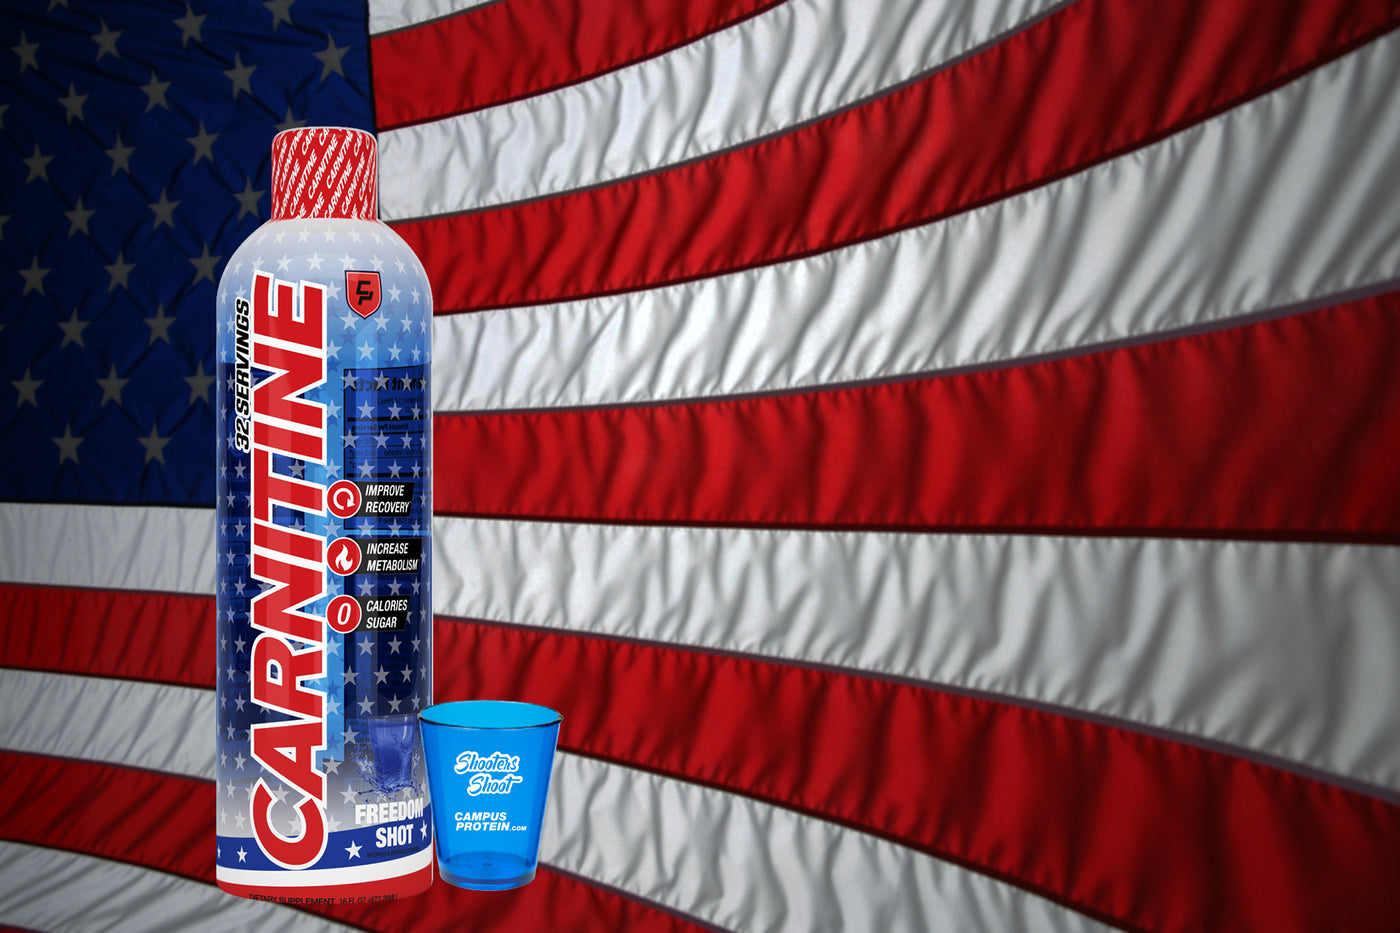 campus protein carnitine weight loss